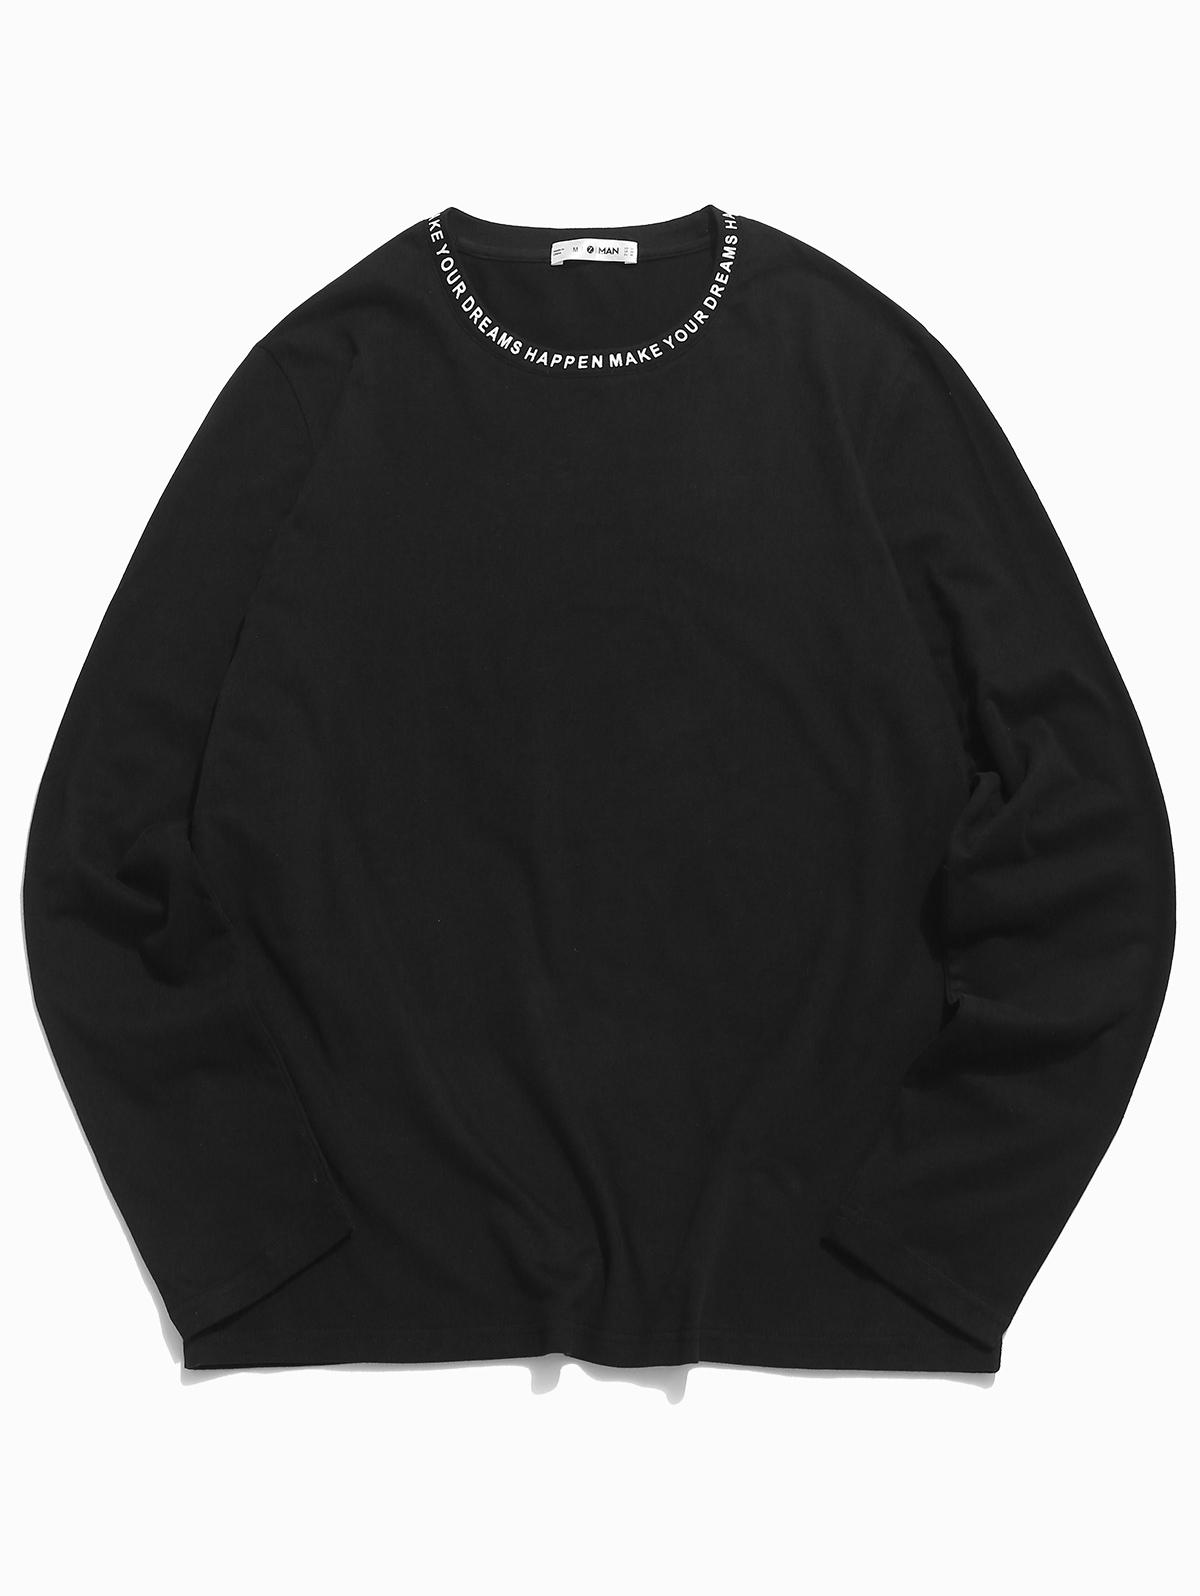 ZAFUL Letter Print Long Sleeve Slogan T-shirt  - buy with discount